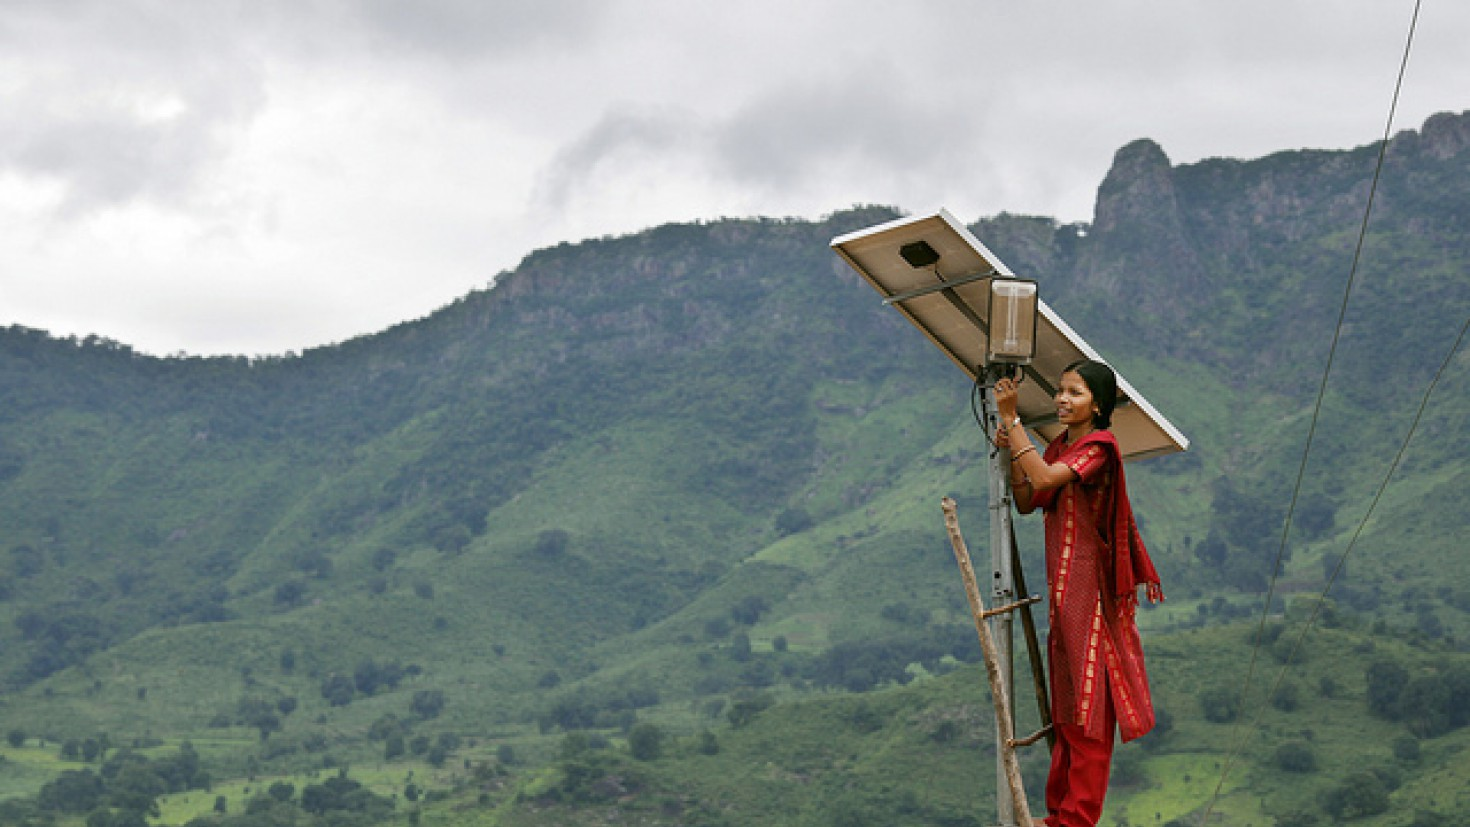 the expert network on second opinions sits on climate knowledge from across the world. Photo: SOLAR energy project in India by UK Department for International Development